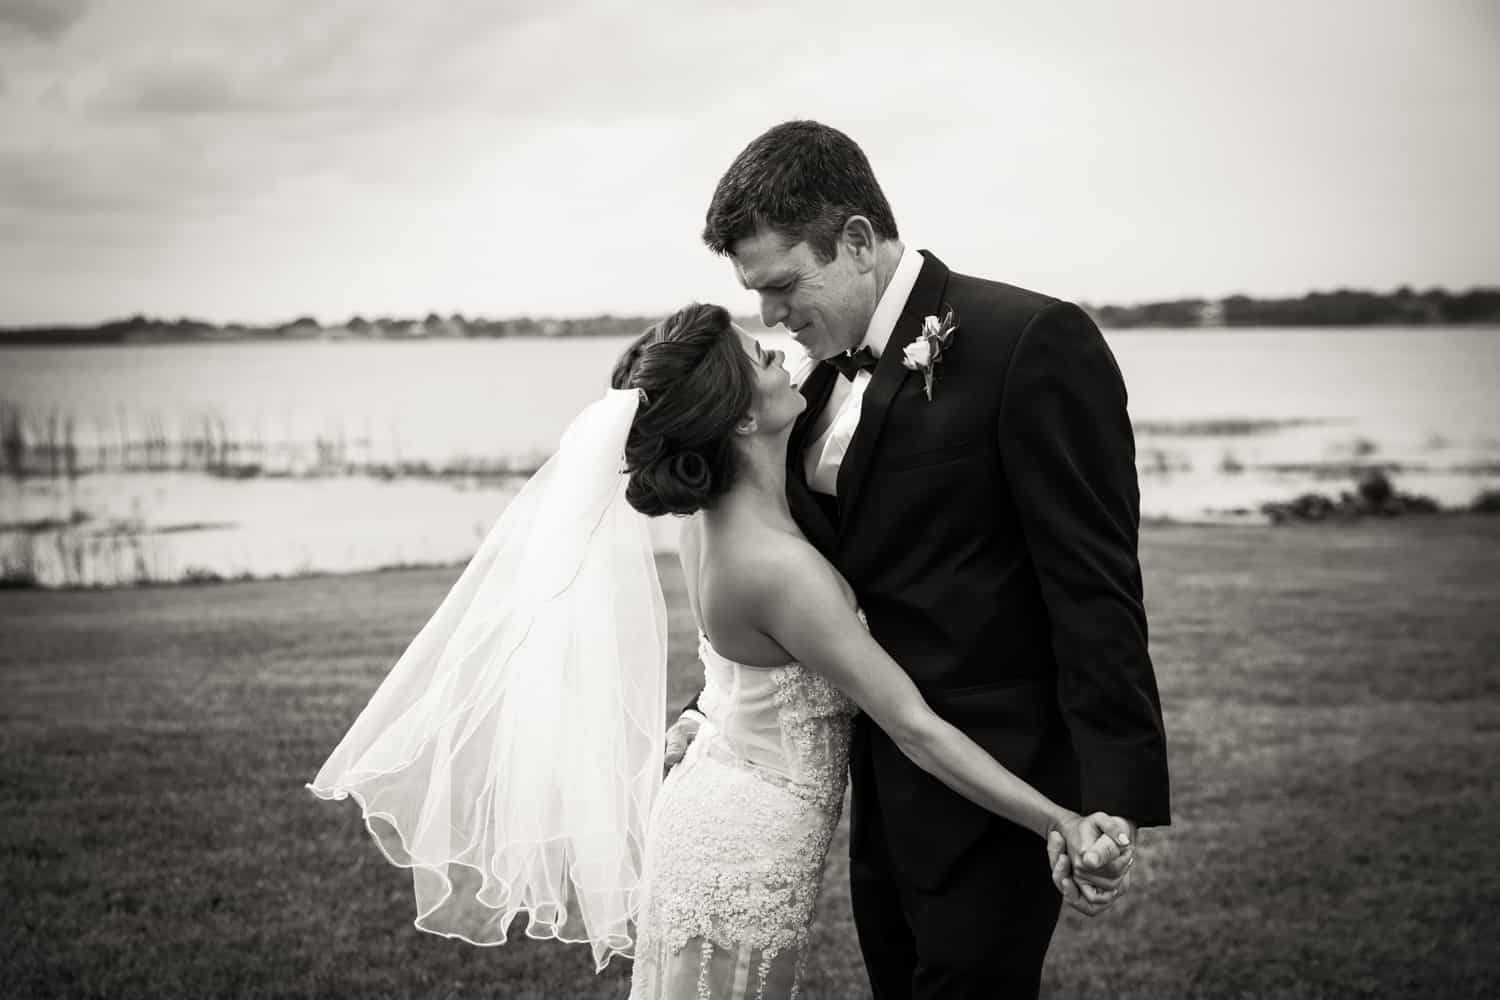 Black and white photo of bride and groom holding hands in front of lake for an article on wedding cost cutting tips